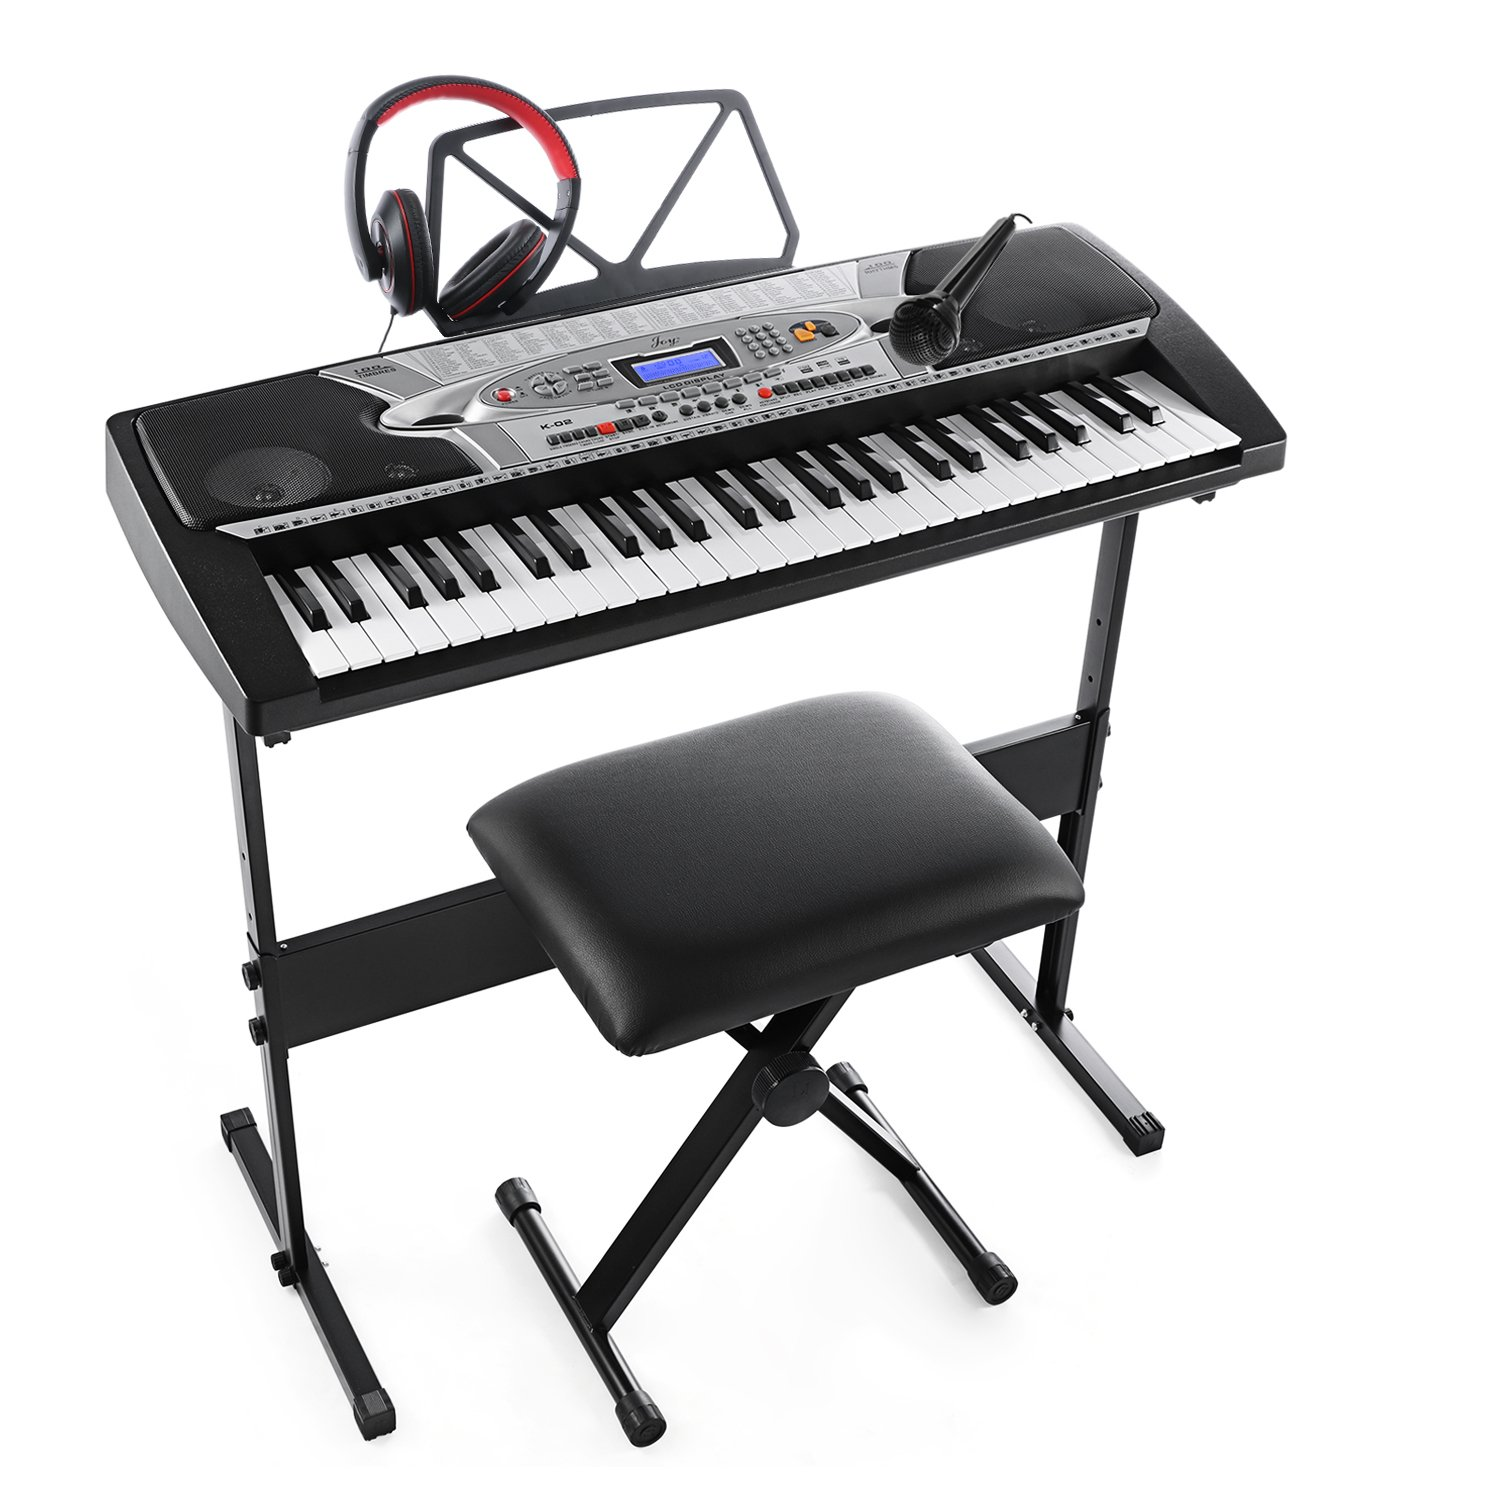 Joy K-02 54-Key With LCD Screen Electronic Keyboard Starter Pack for Beginners with Microphone,Headphone,Stand,Stool,and Power Supply CHINA JOY KEYBOARDS CO. LTD K-02-KIT